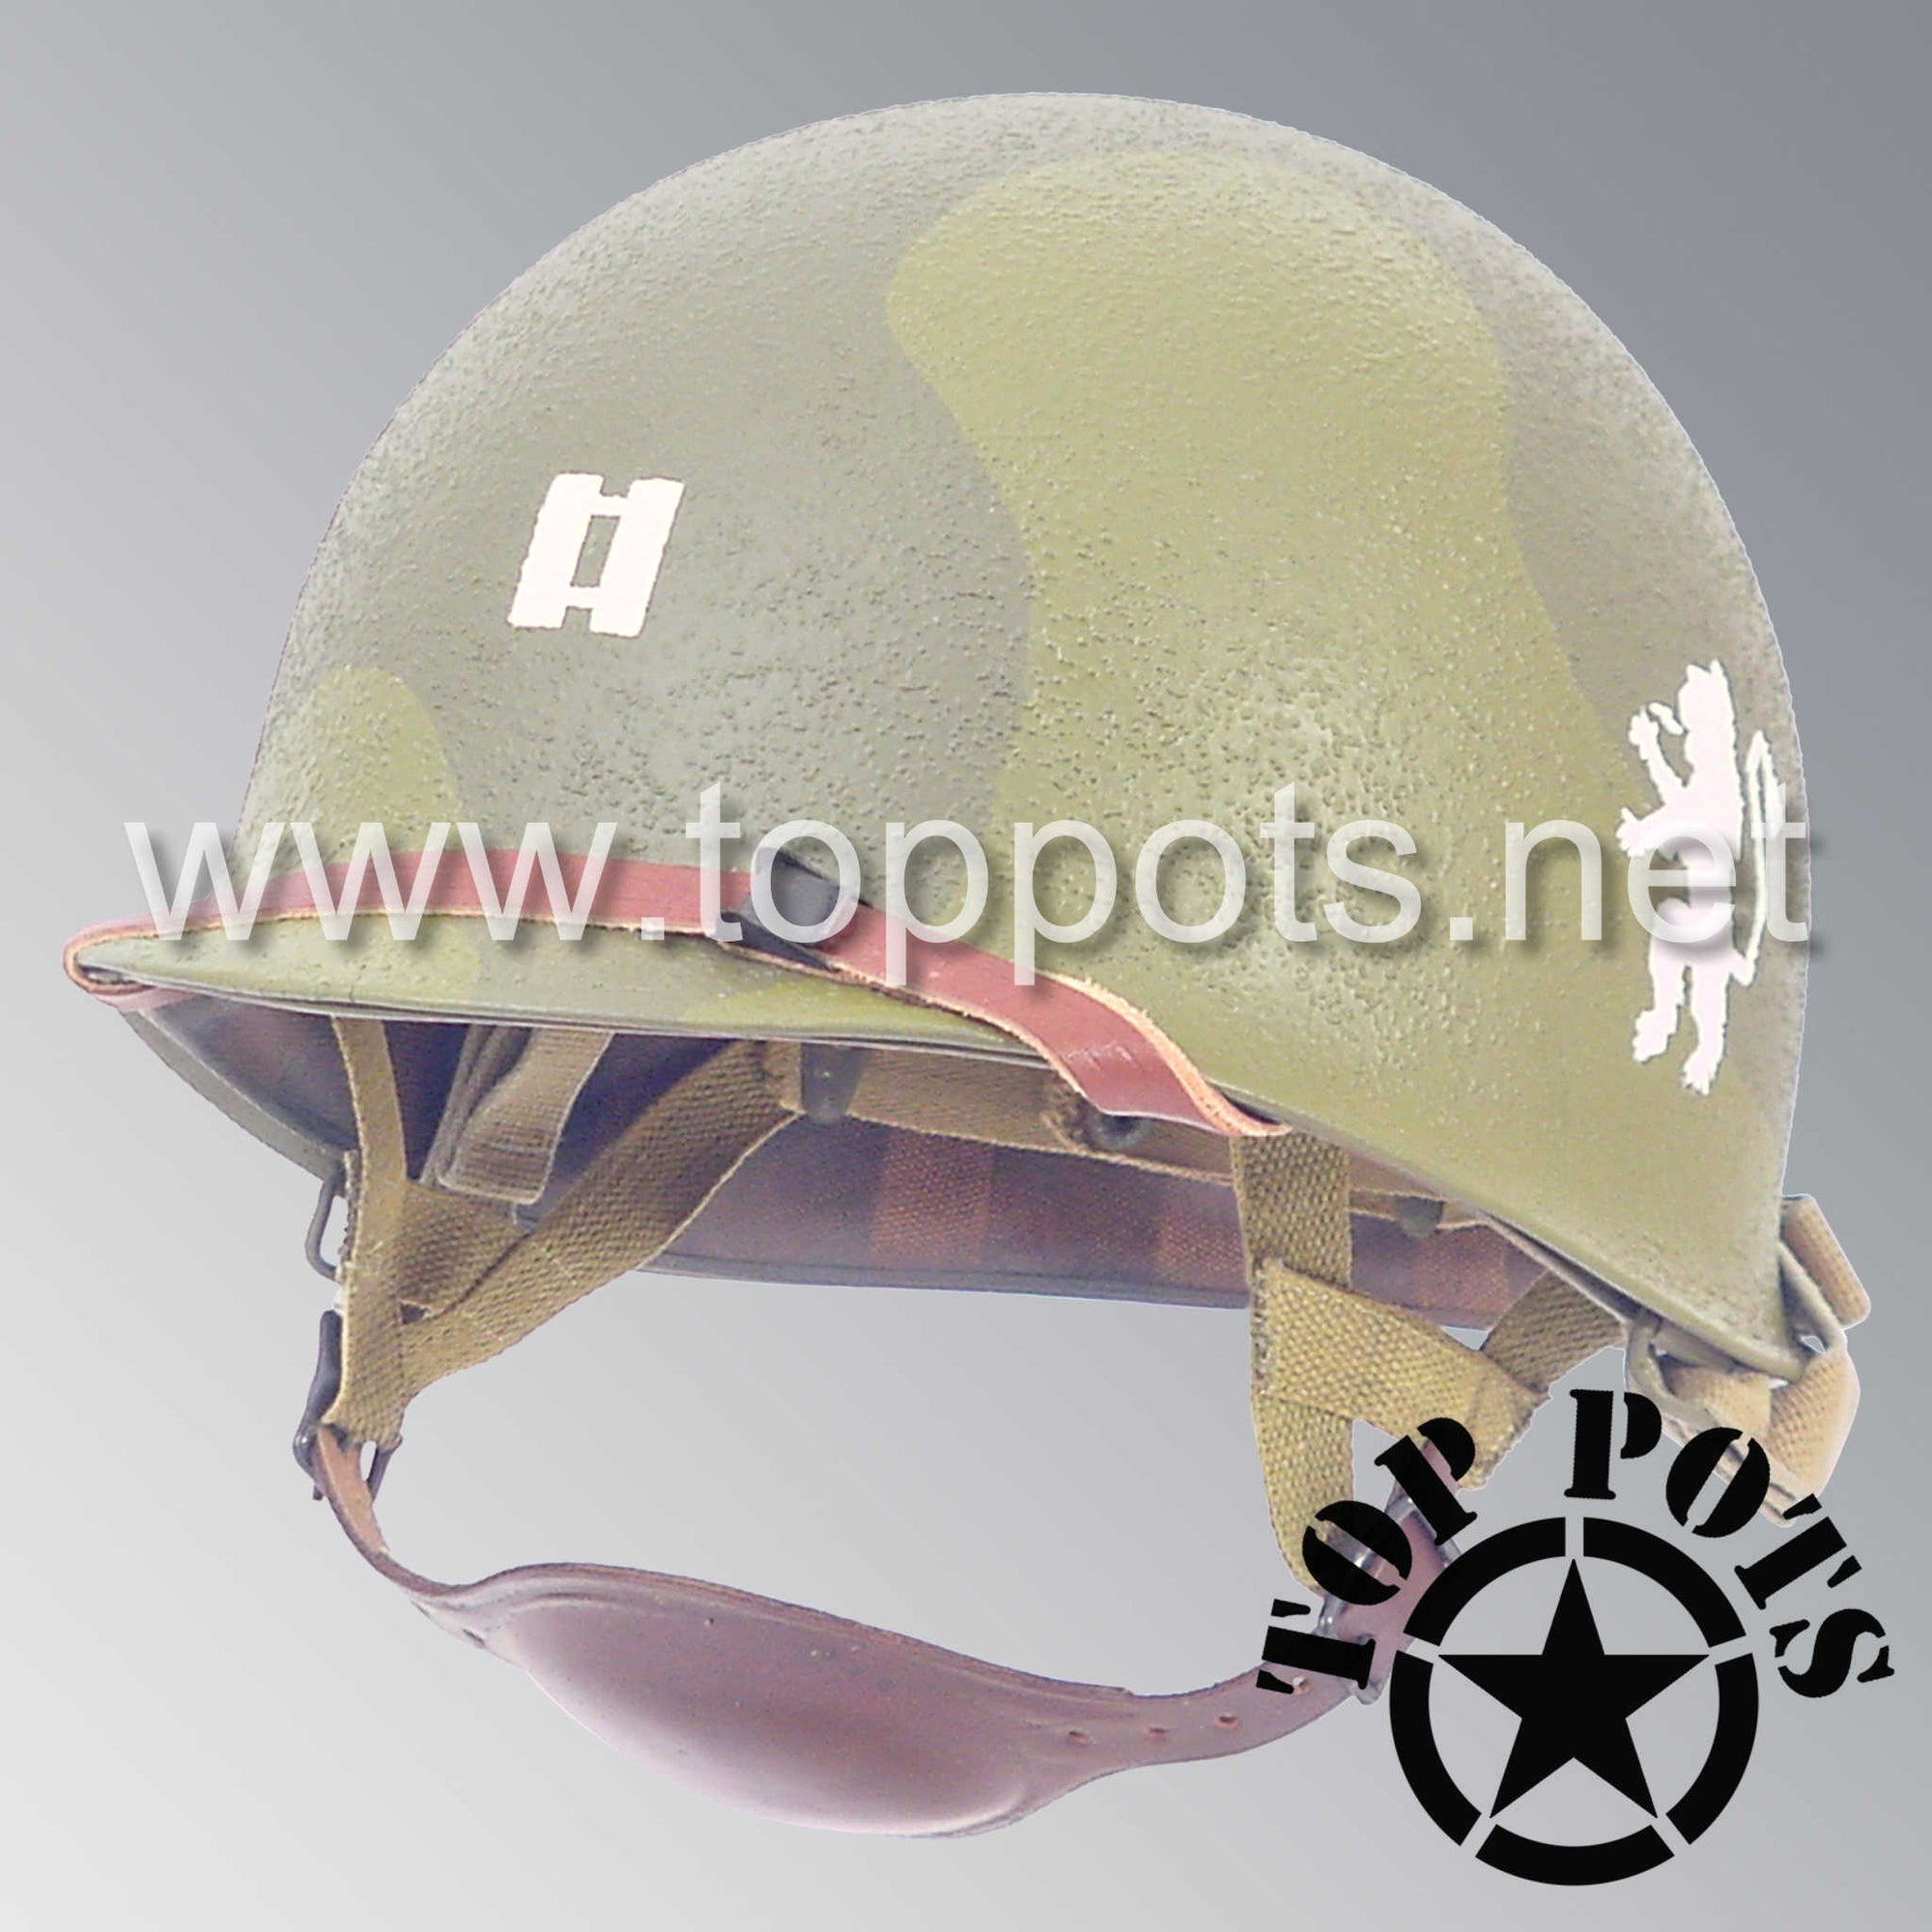 Image 1 of WWII US Army Restored Original M1C Paratrooper Airborne Helmet Swivel Bale Shell and Liner with 505th PIR Officer Pathfinder Camouflage Emblem